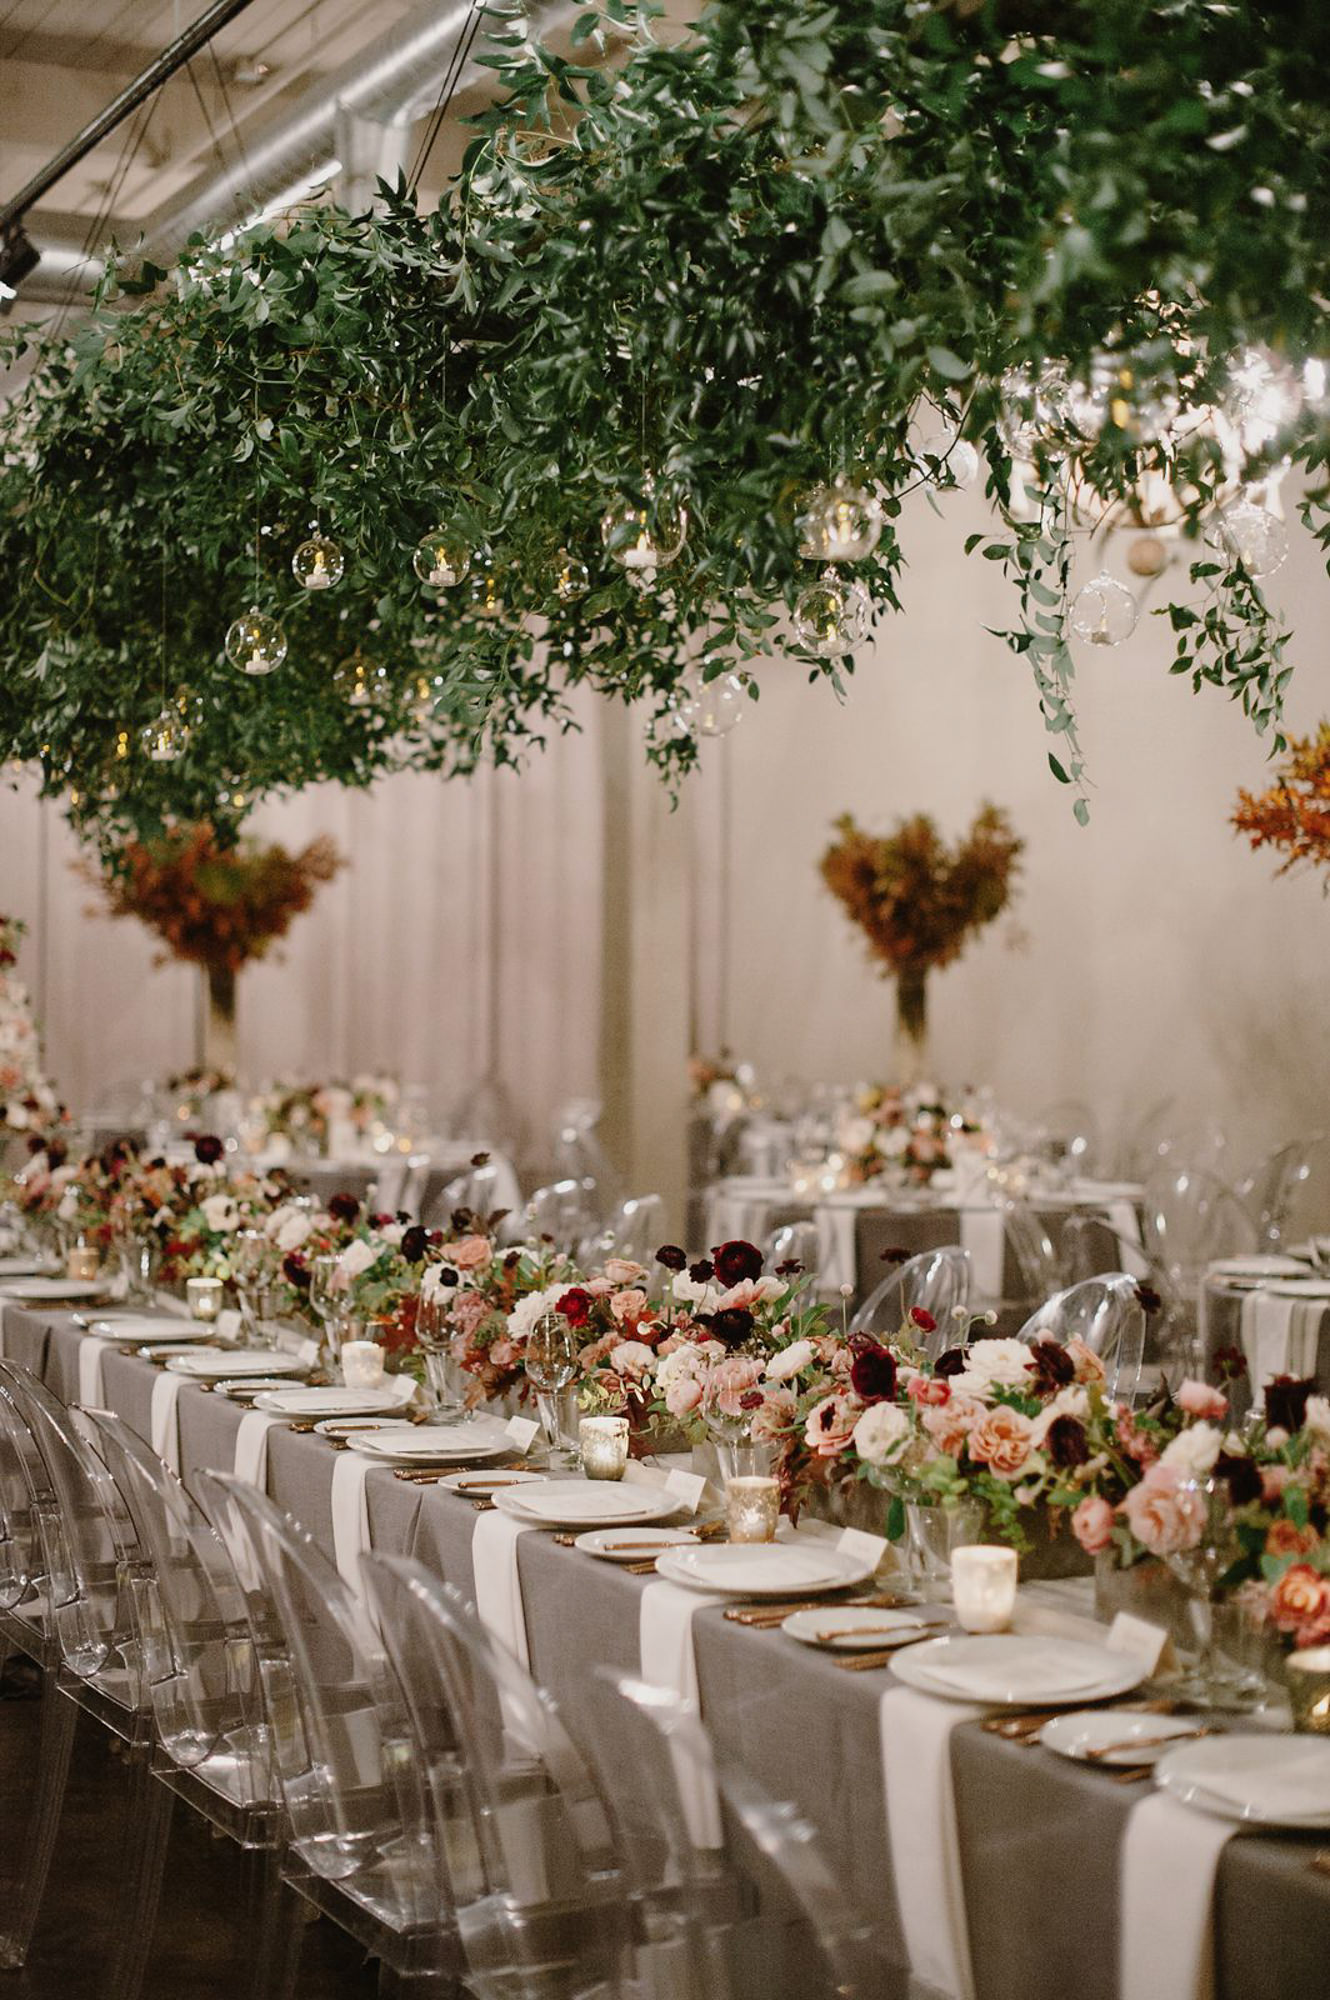 Greenery draped decor ghost chairs - photo by Kristen Marie Parker